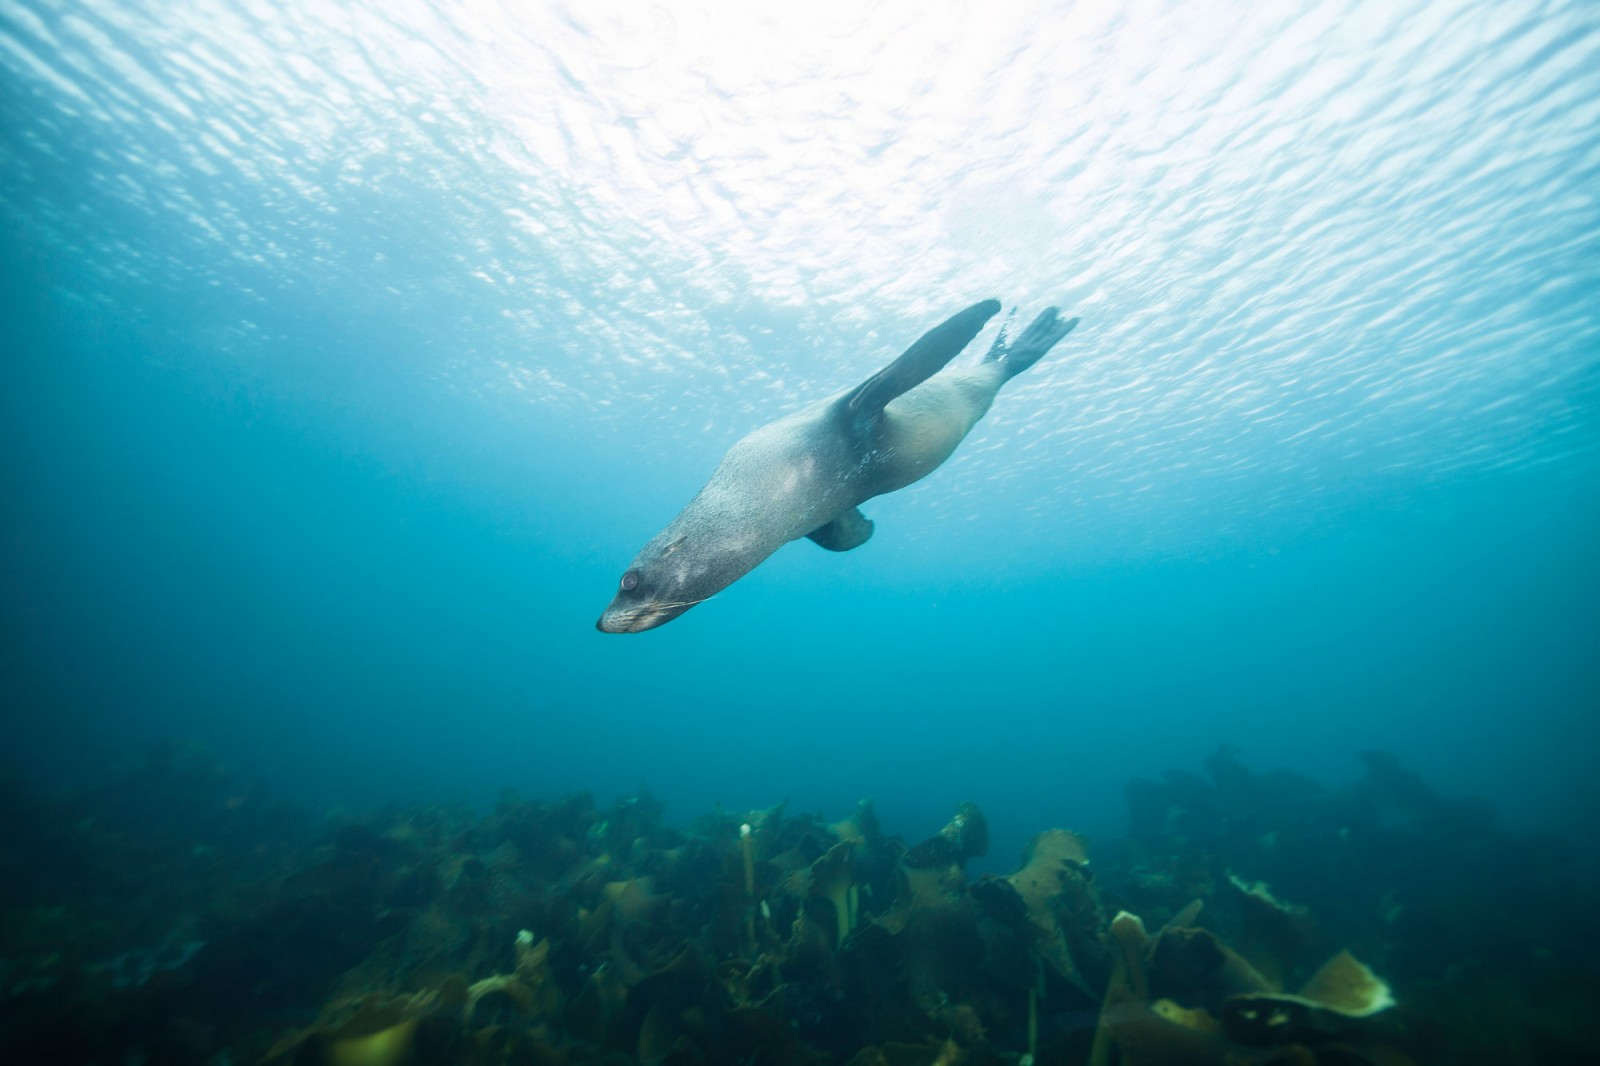 A New Zealand fur seal swoops past the photographer in the sapphire waters of Hut Cove, Antipodes Islands. The seals there appeared more wary of human presence than those in colonies on the mainland; not surprising given that 19th-century sealers took some 200,000 seals from the area in just two seasons.